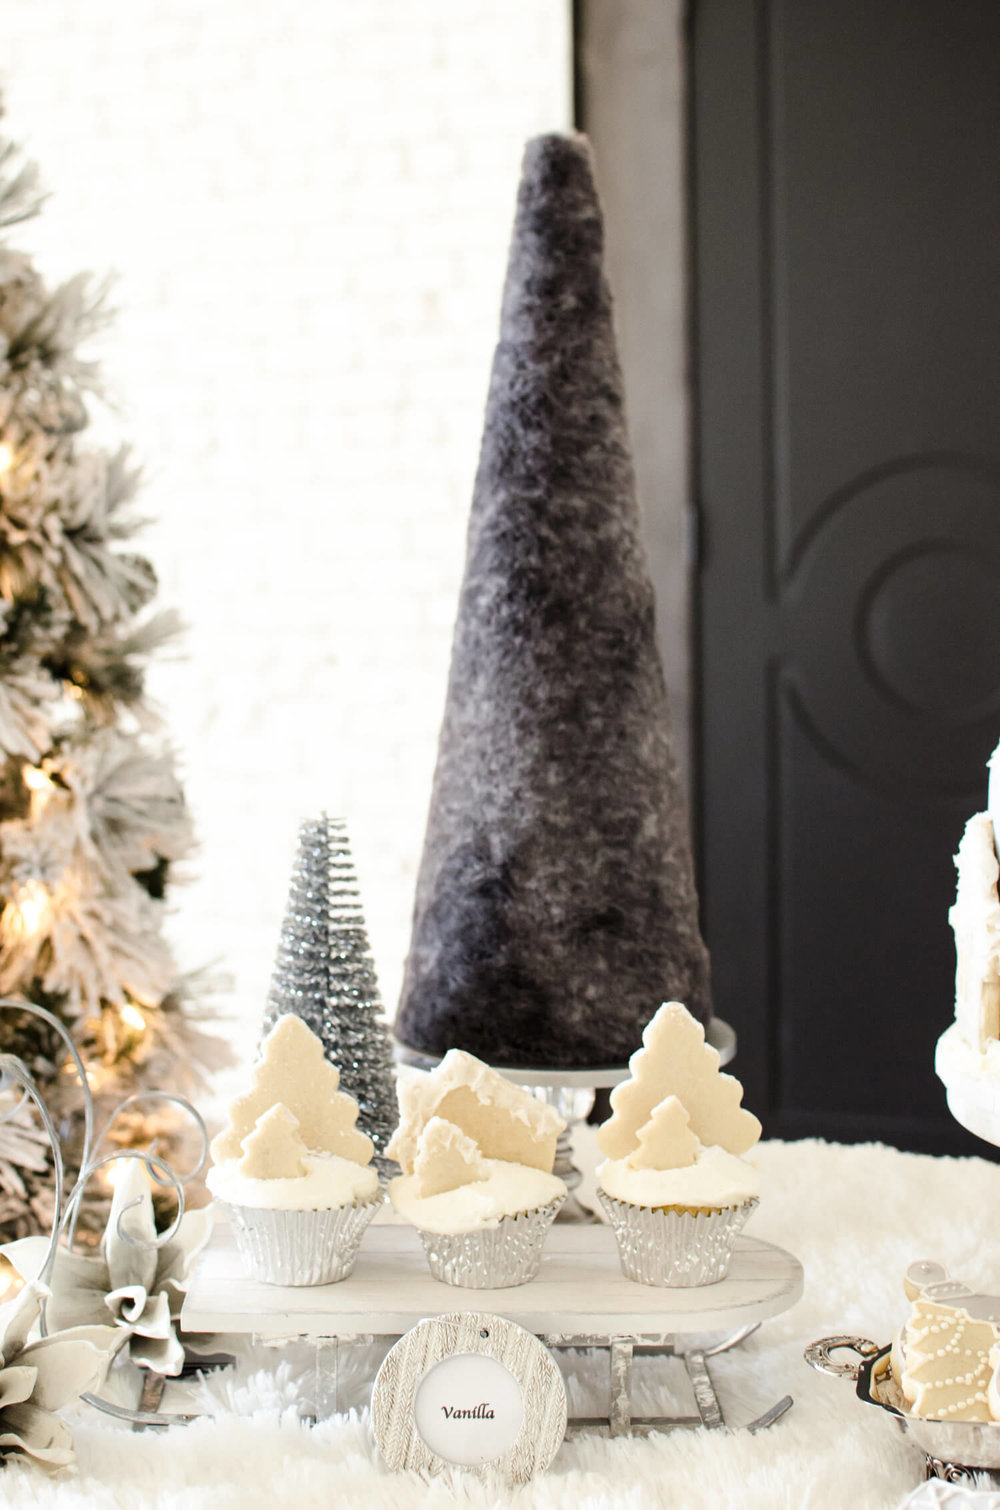 Beautiful cupcake ideas for a winter wonderland desserts table.